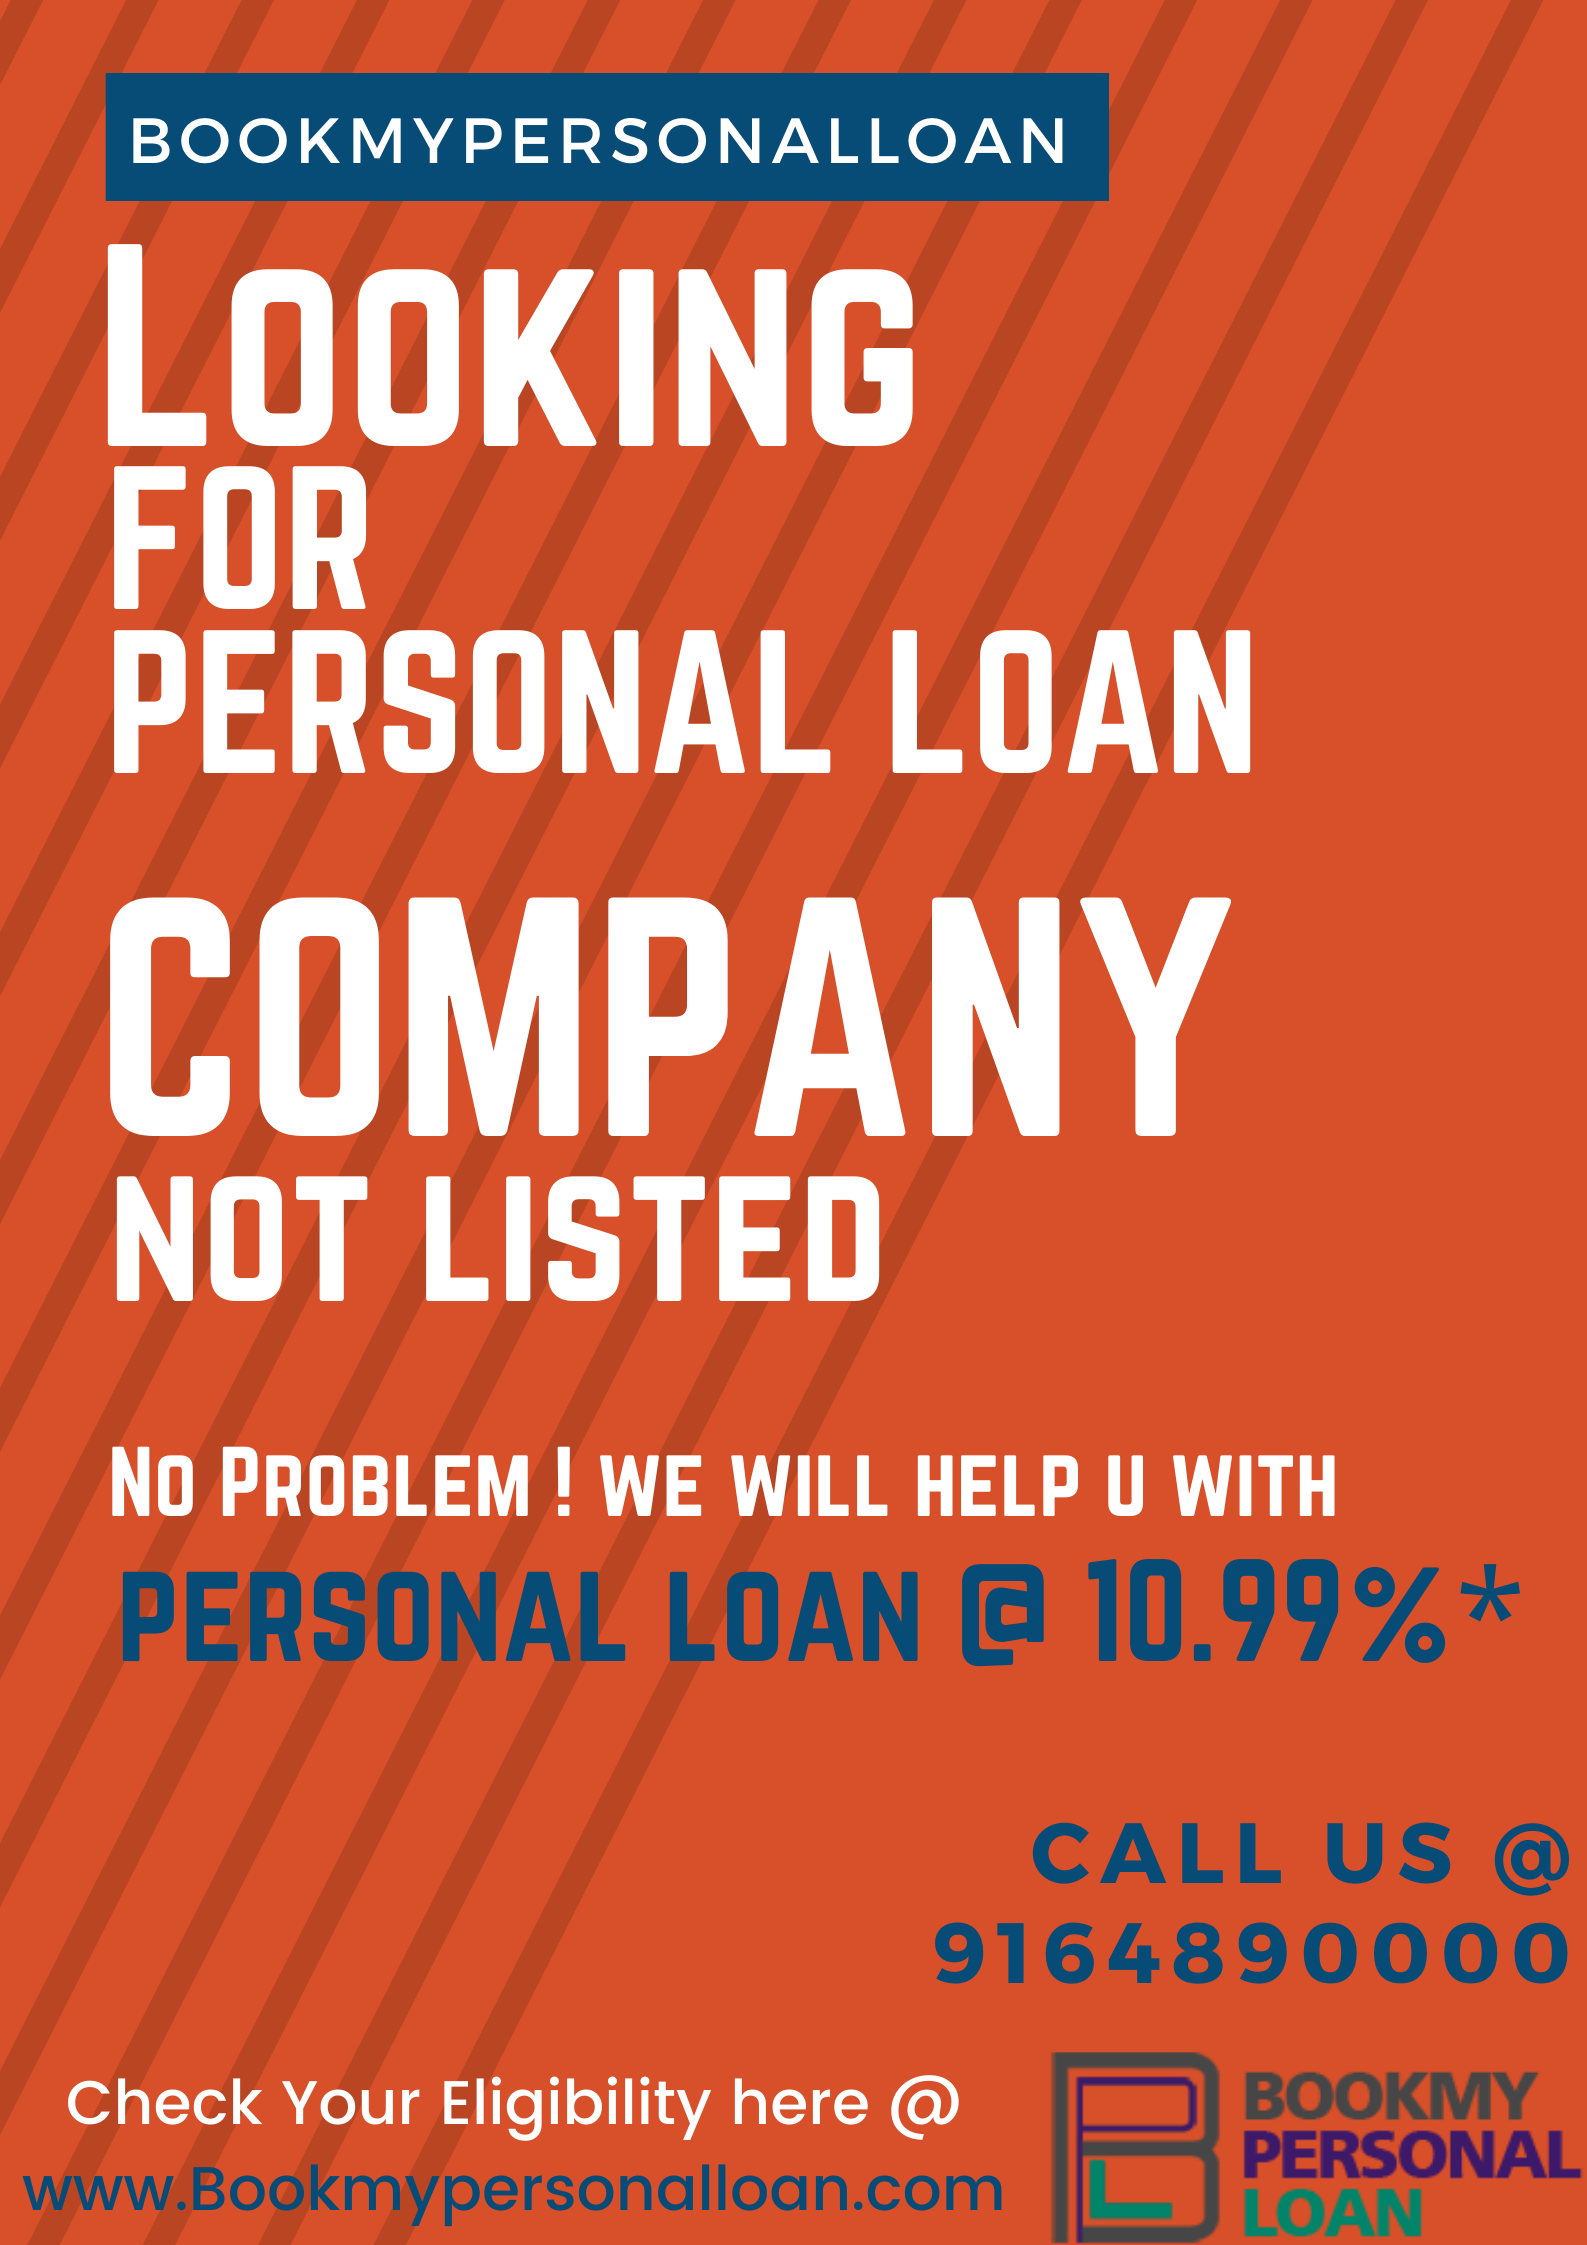 Personal Loan With Low Interest Rates In Bangalore In 2020 Personal Loans Low Interest Personal Loans Loan